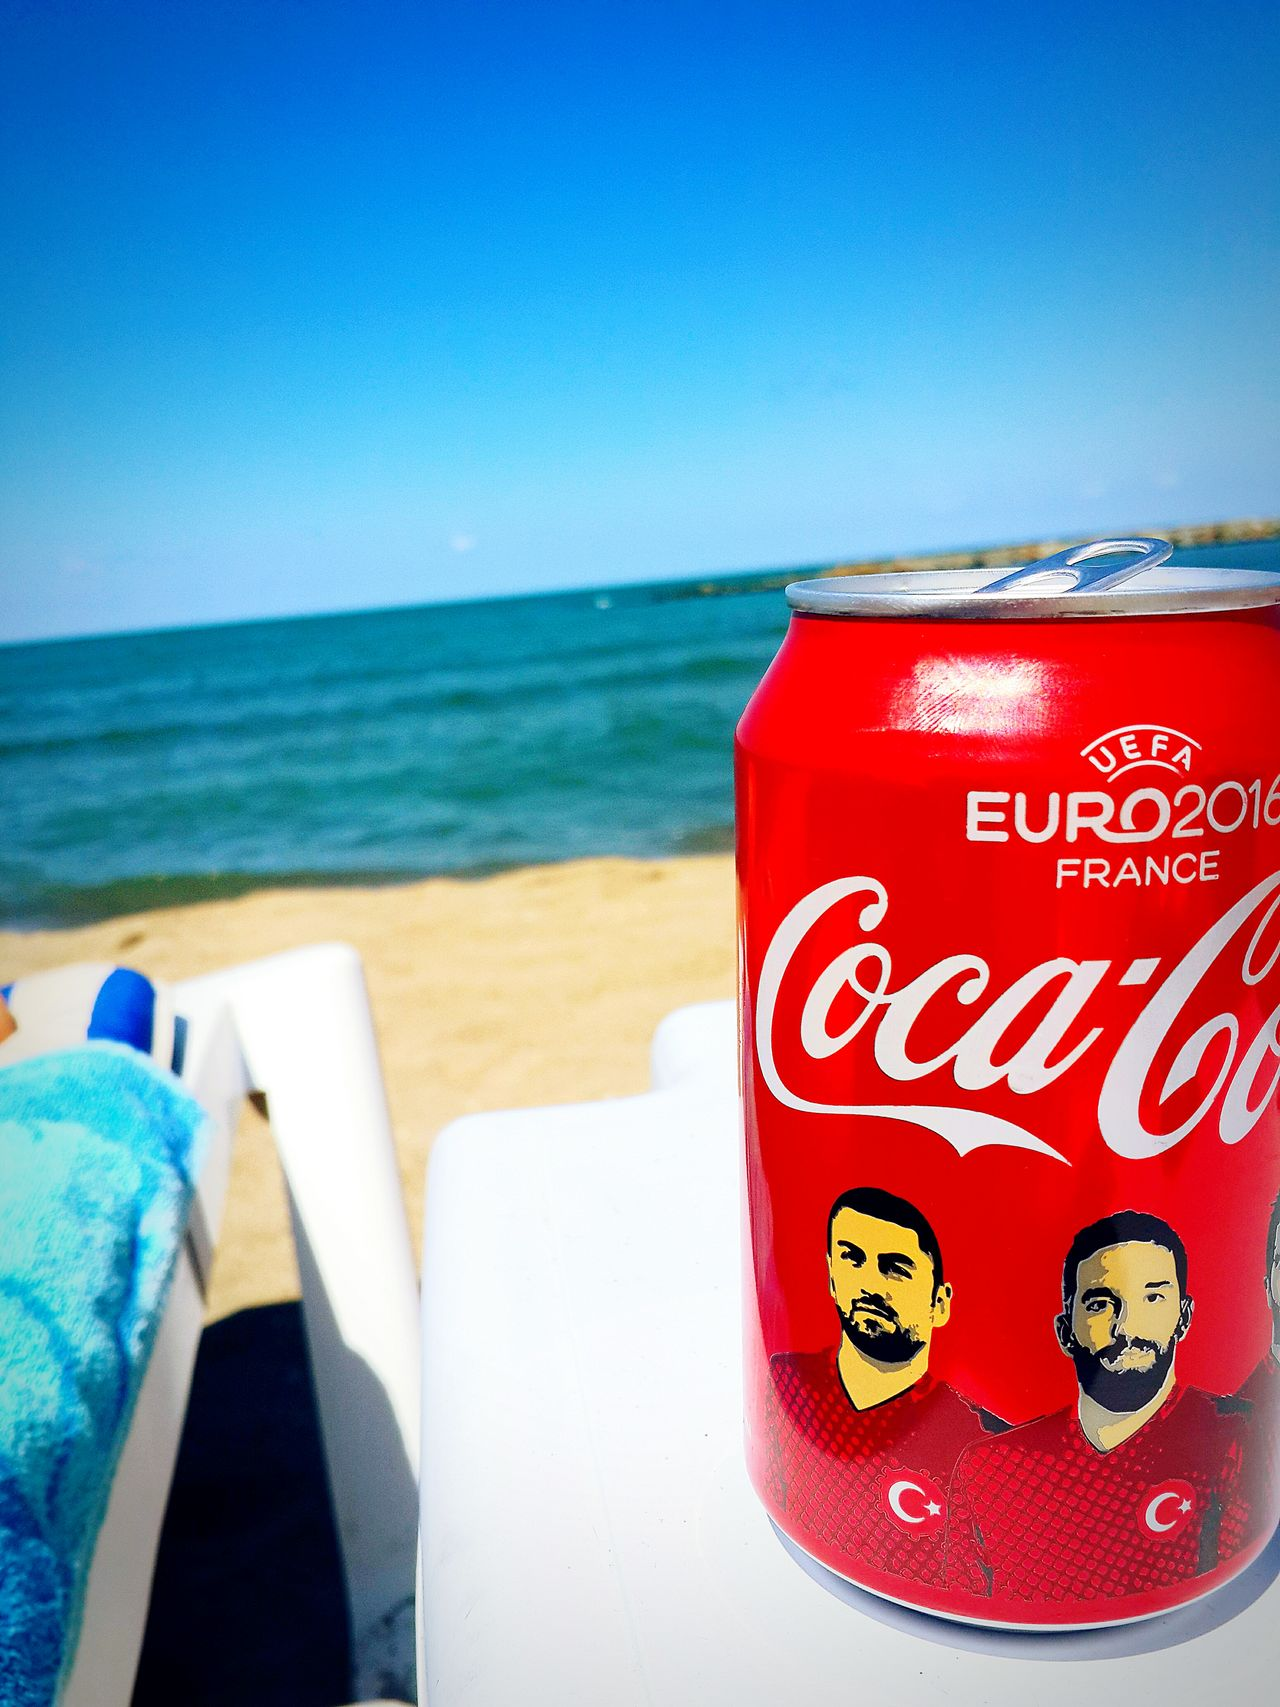 Turkey First Eyeem Photo Turkish Phone Samsung Galaxy Note 3 12MP Summer Naturel Camera Karasu Sakarya Cococola Arda Turan Europa Futbol Futbol Time Blue Blue Sea Eyemm Popular Photos Eyem